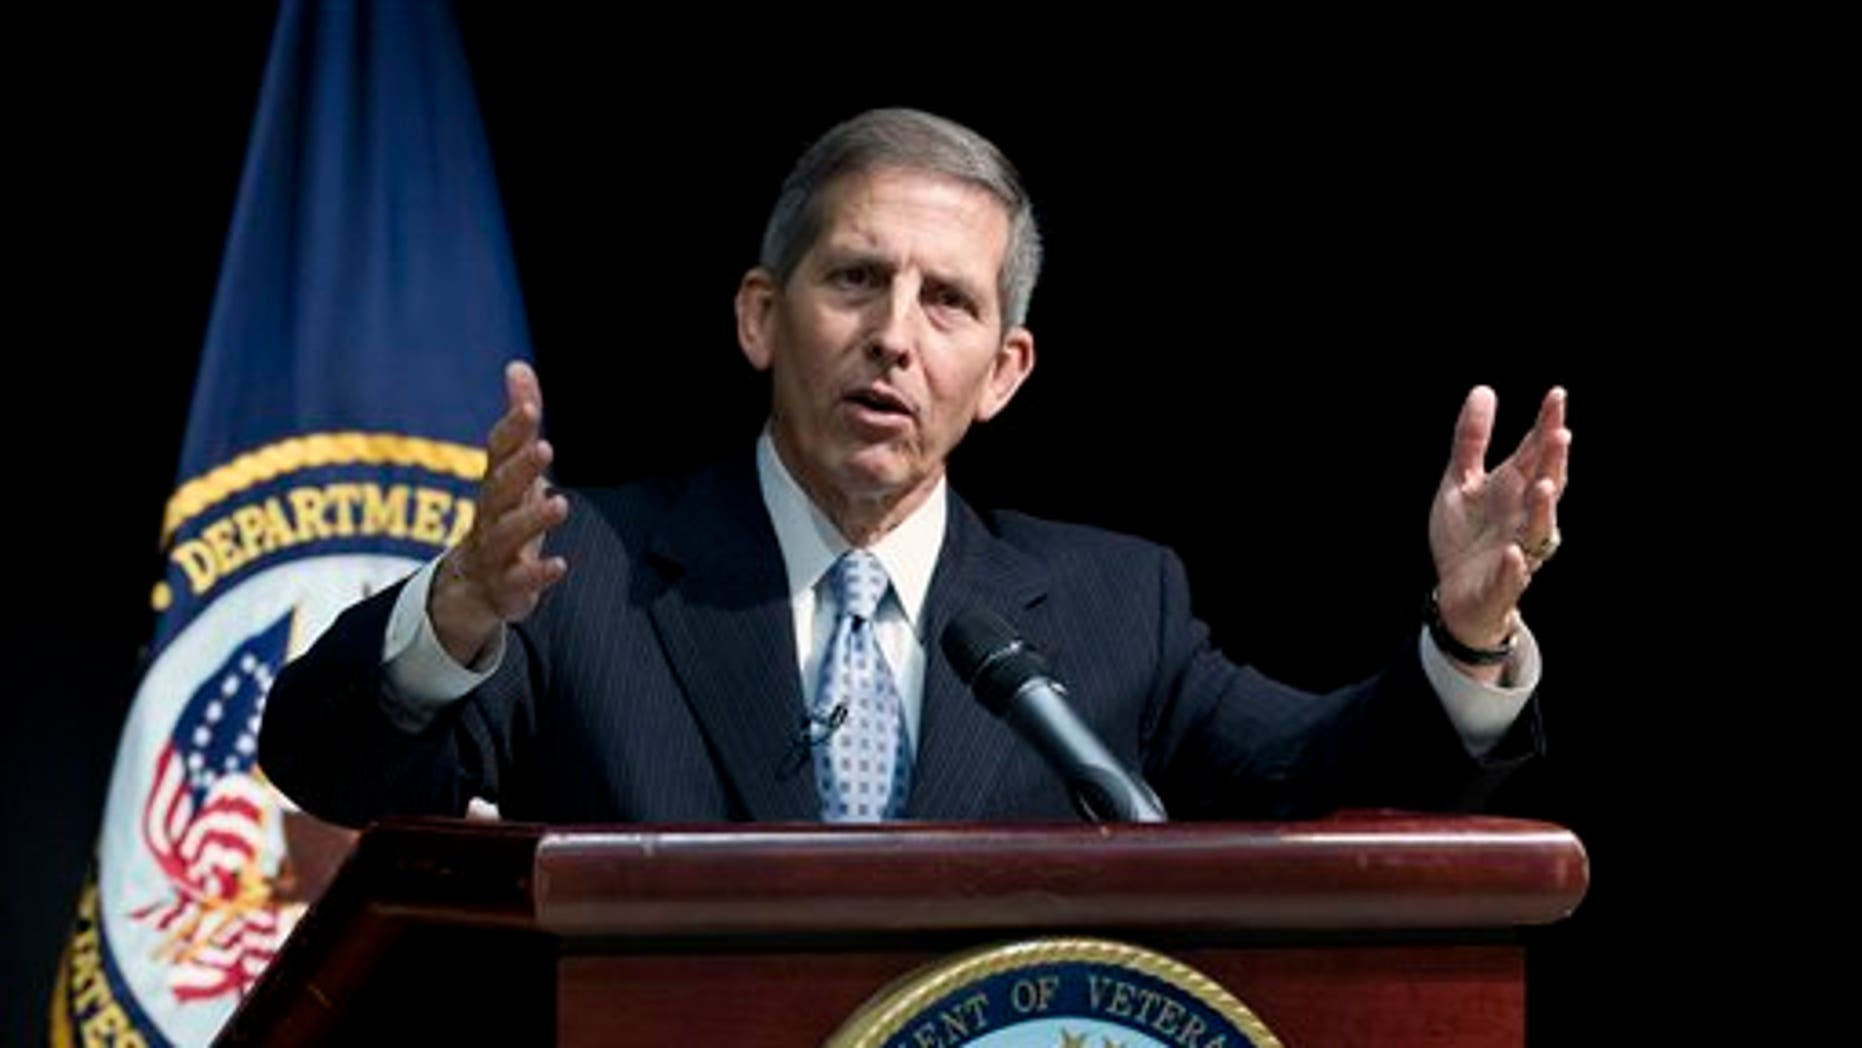 Acting Veterans Affairs Secretary Sloan Gibson speaks during a news conference at the VA Medical Center in Washington, Wednesday, June 18, 2014. The Veterans Affairs Department (VA) release the results from its Nationwide Access Audit, along with facility level patient access data for all Veterans health facilities. (AP Photo/Jose Luis Magana)